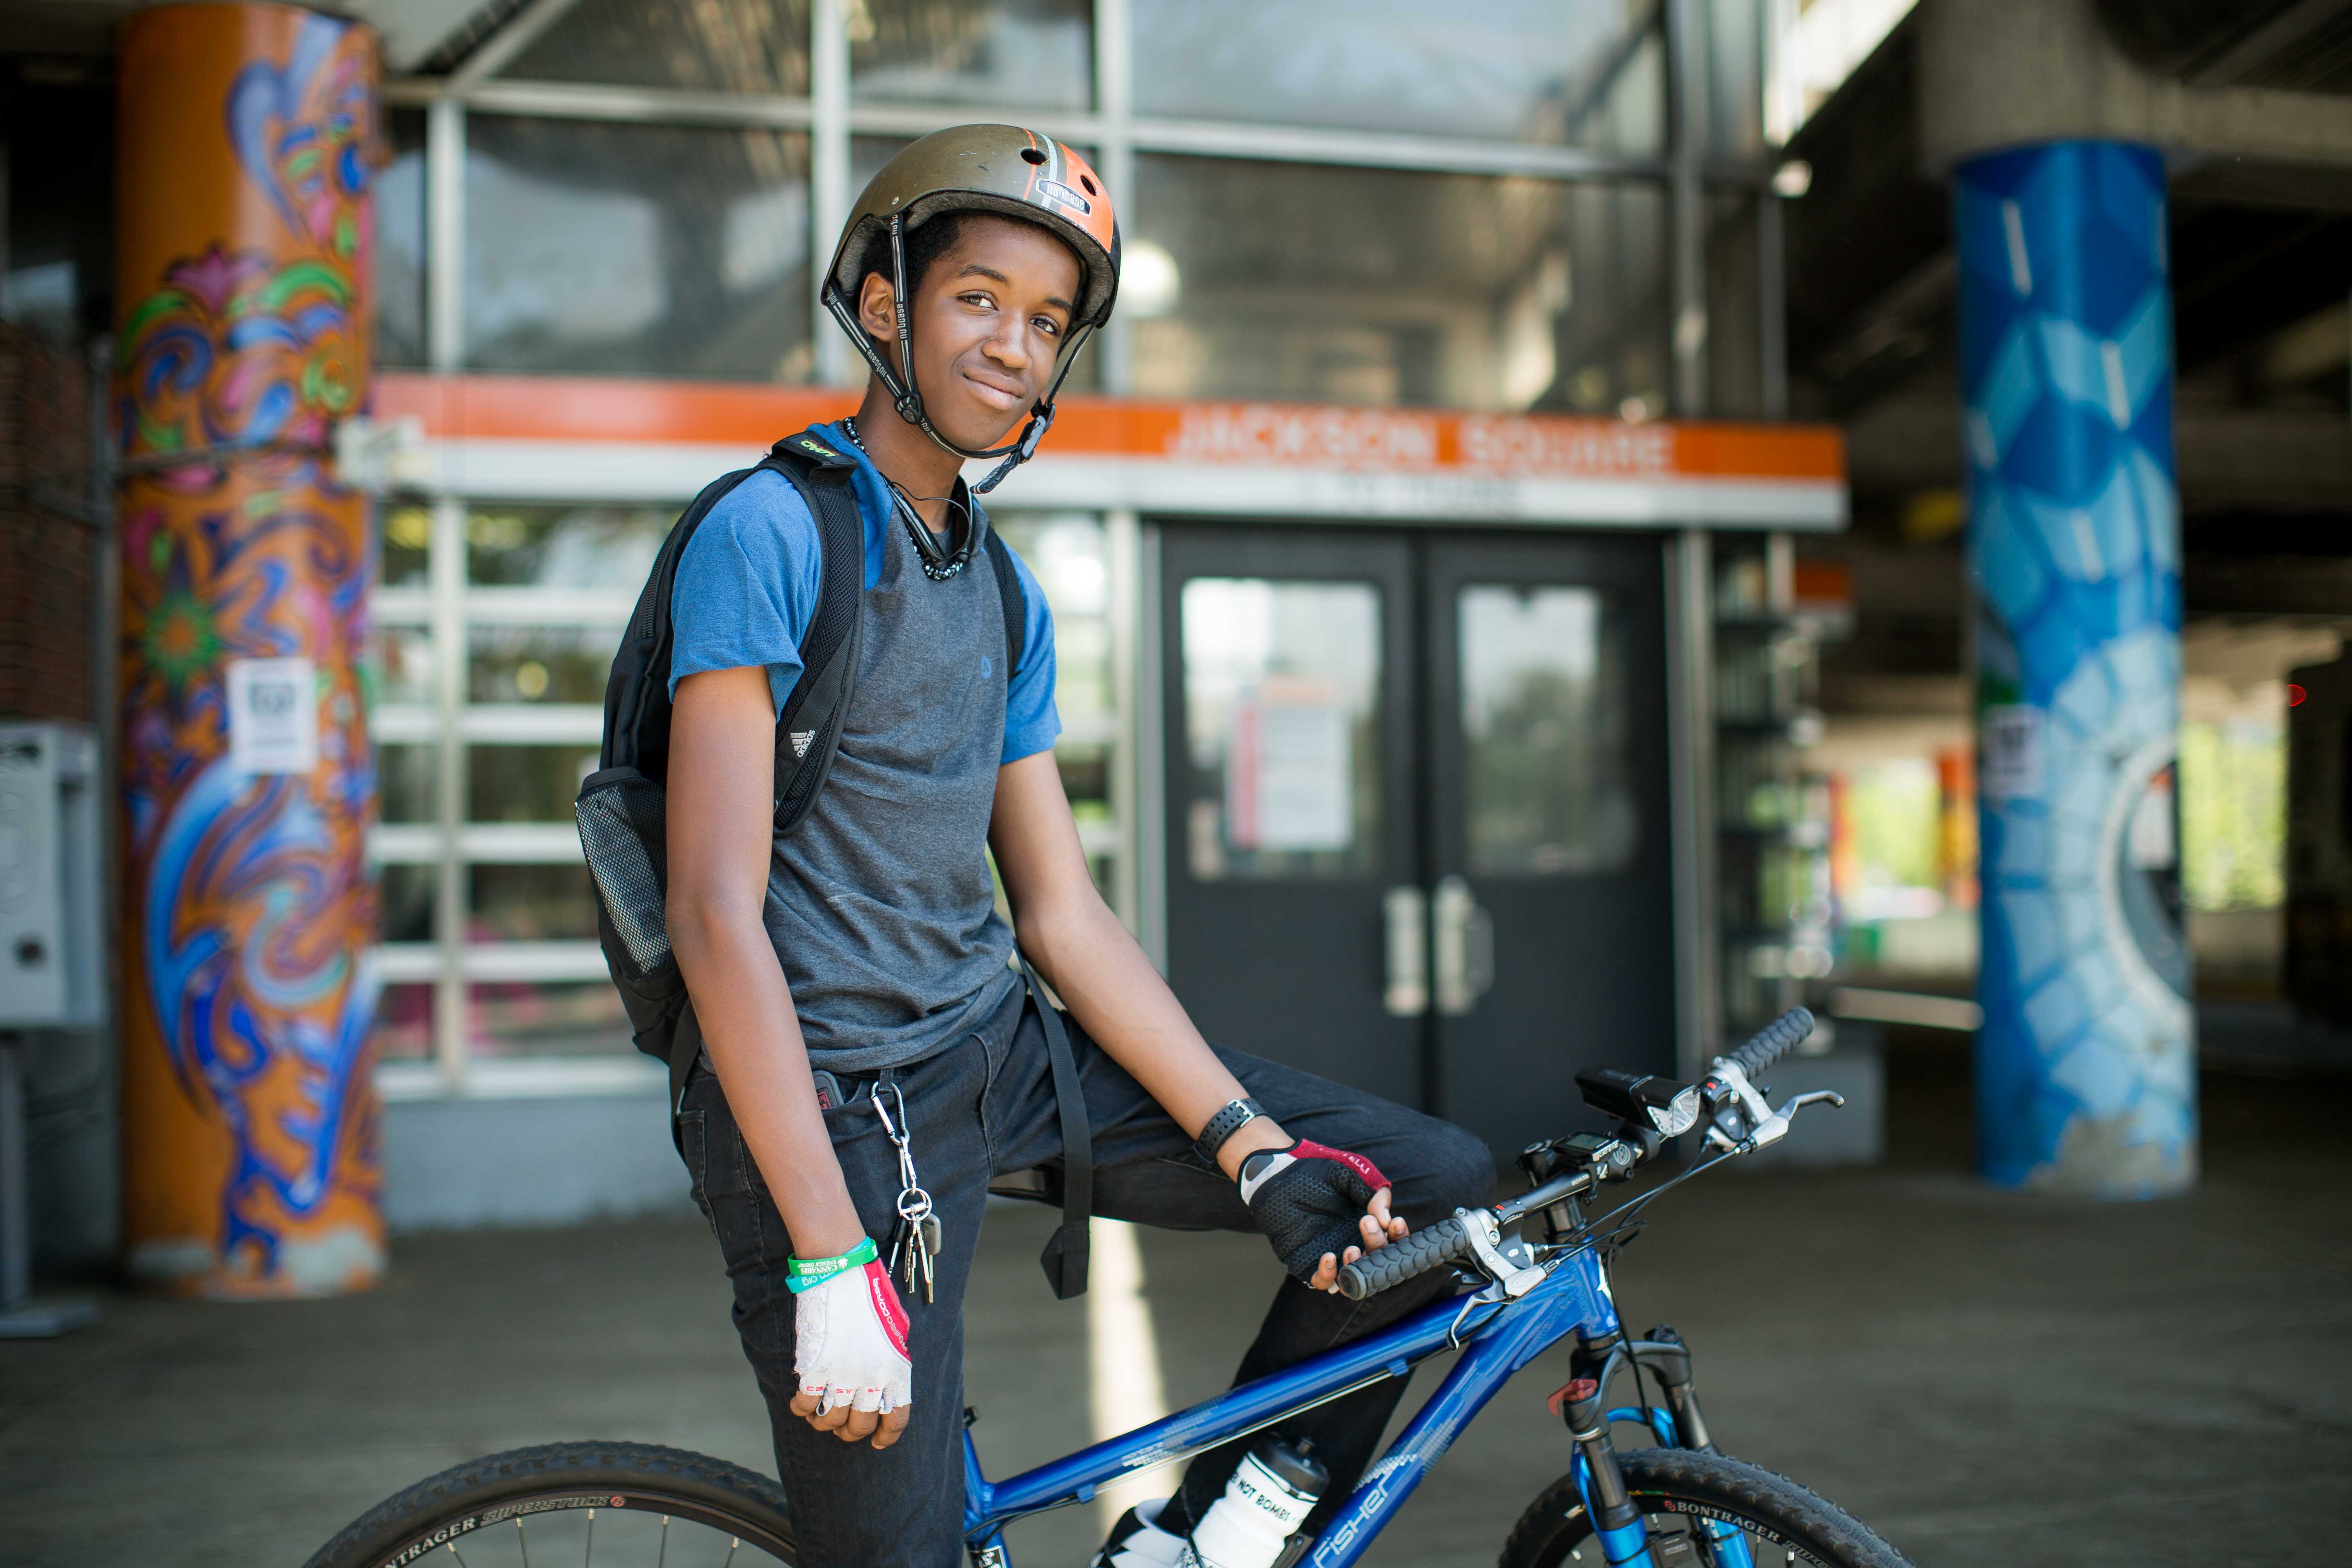 Urban Youth Portrait - Boston Hubway